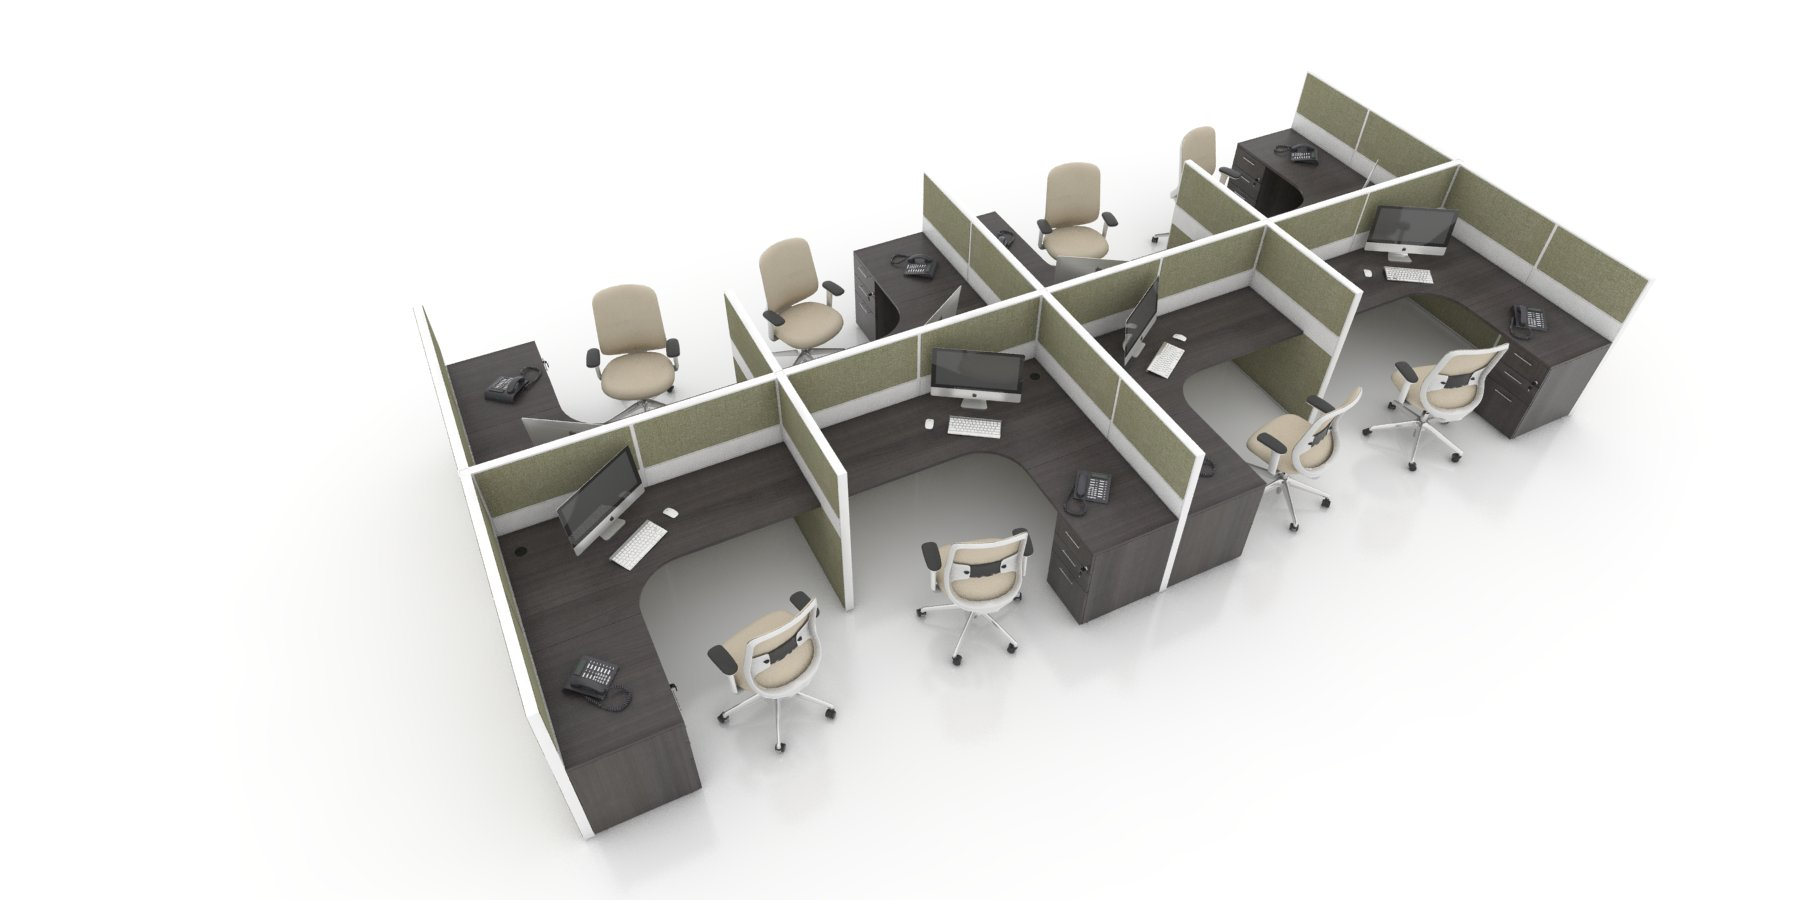 Refurbished Cubicle L Shape Workstations With Fabric Panels Tuxedo Laminate Dn66 Olive Fabric The Furniture Guys